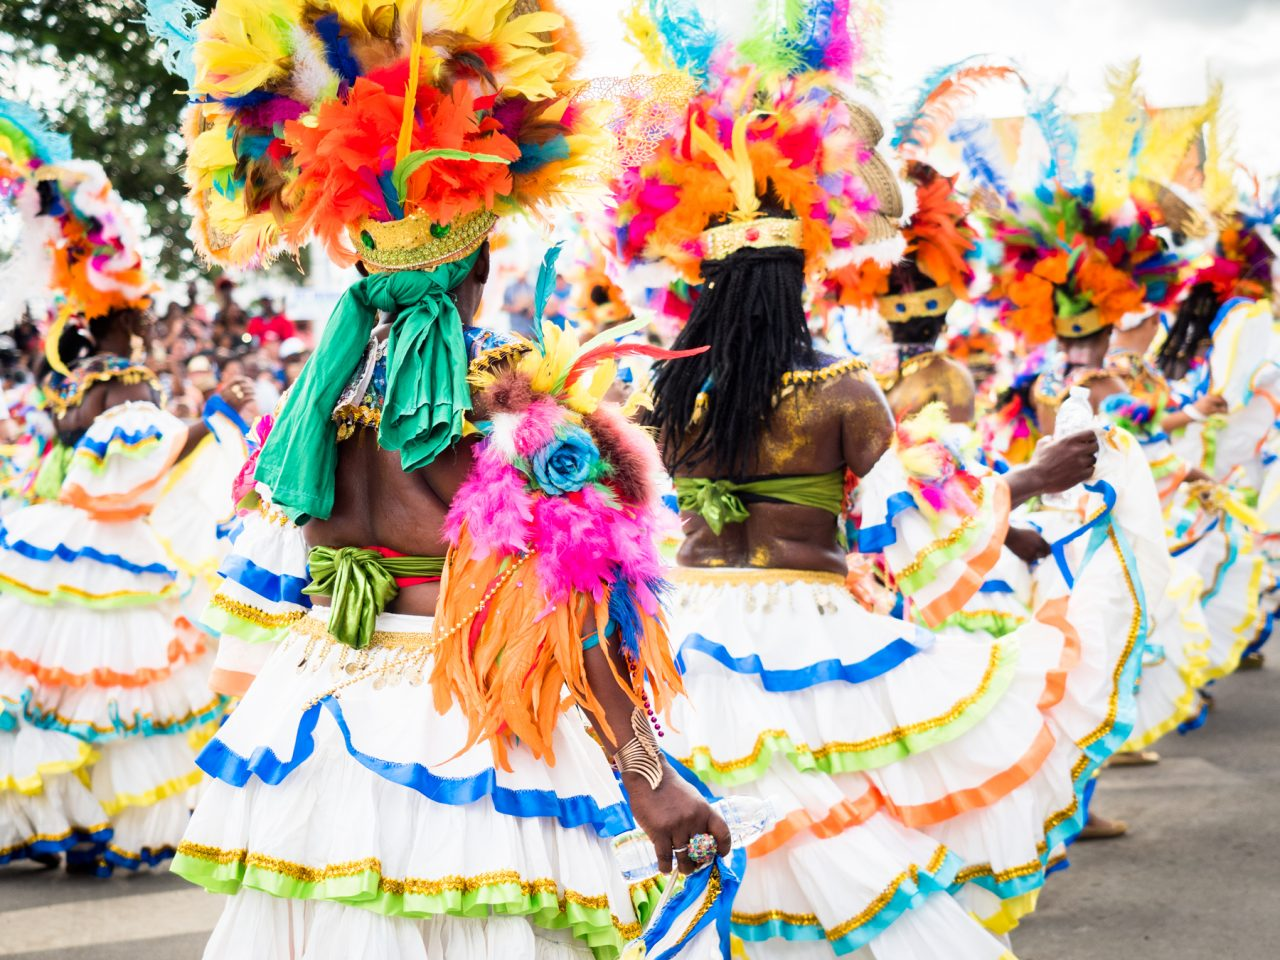 carnaval guadeloupe-carnaval antillais guadeloupe-costume carnaval-defile carnaval-déguisement carnaval guadeloupe